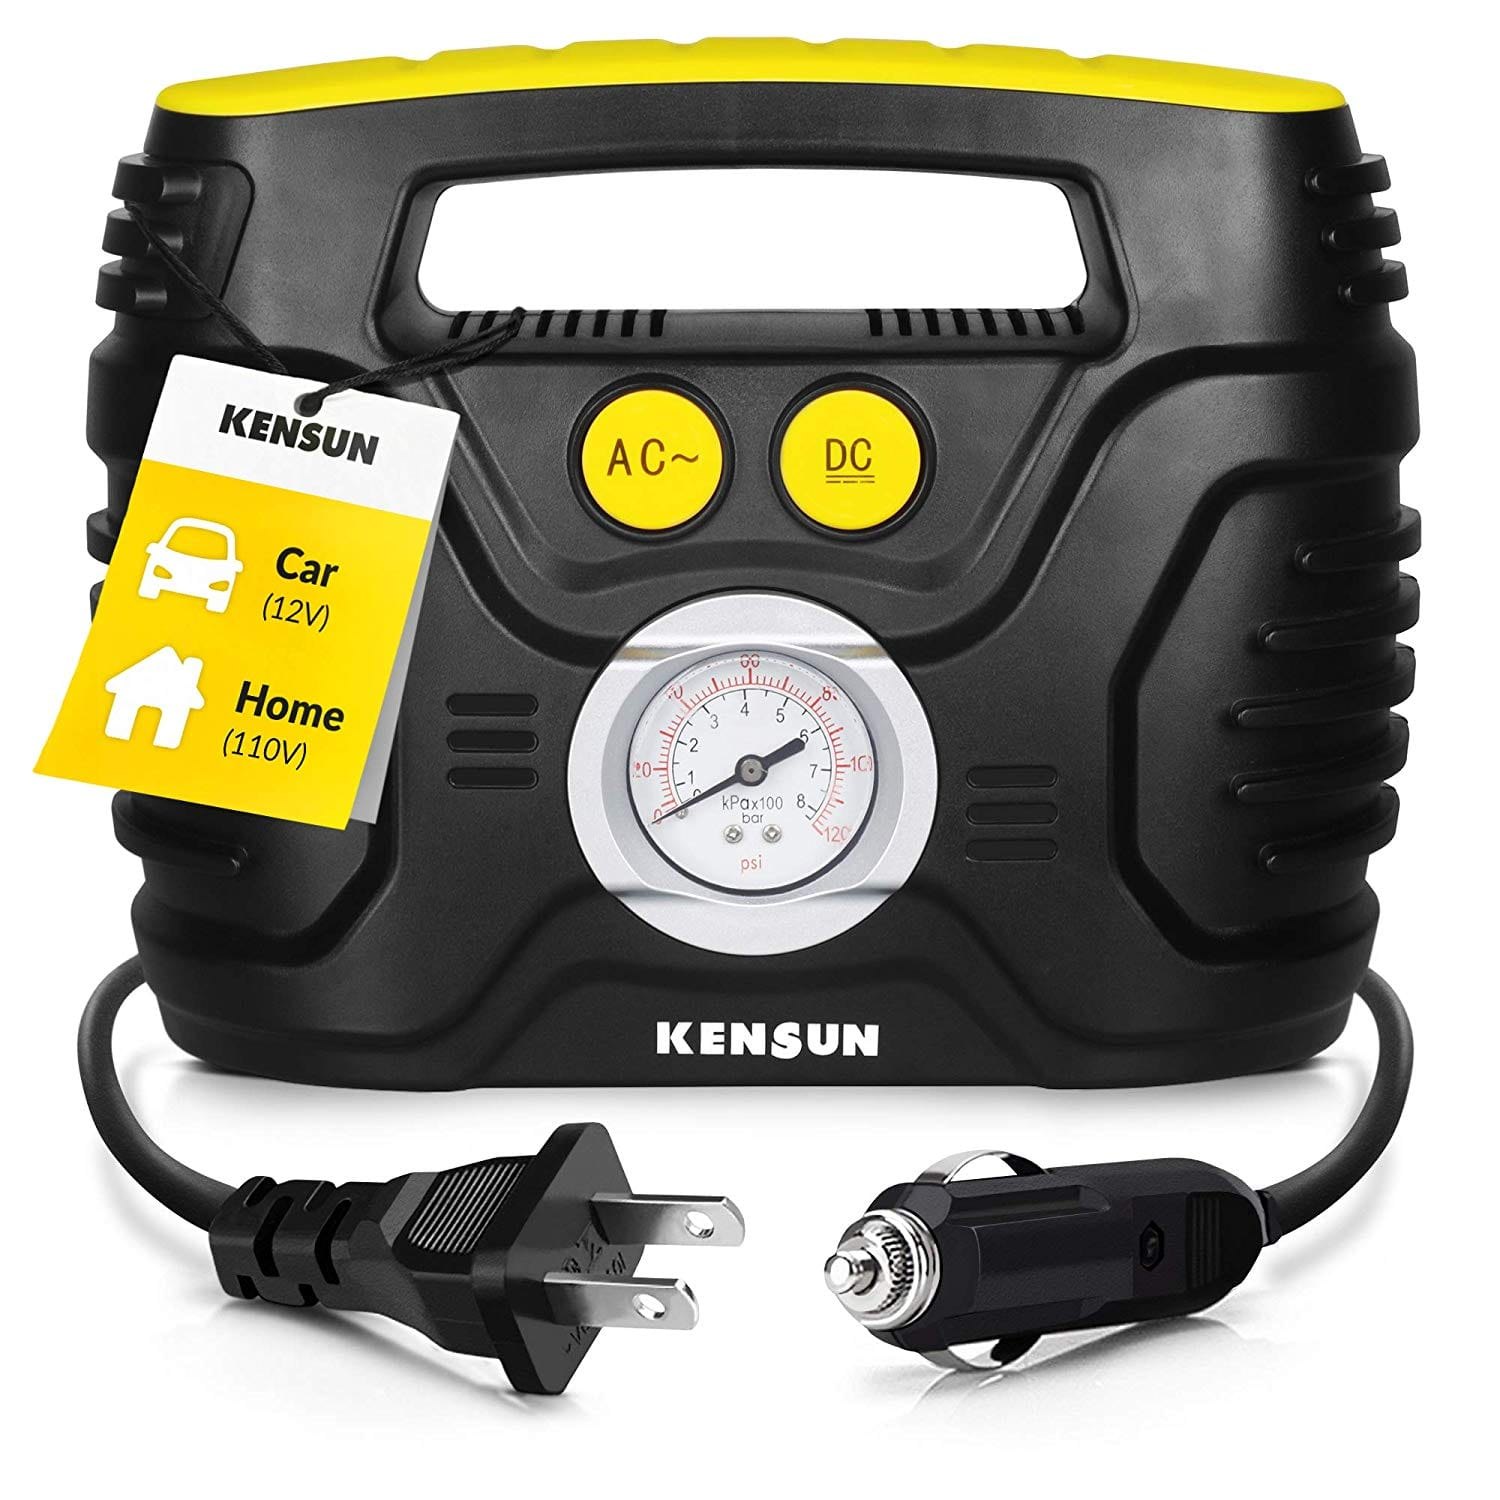 Car Tire Inflator Where To Buy, Kensun Portable Air Compressor Pump, Car Tire Inflator Where To Buy